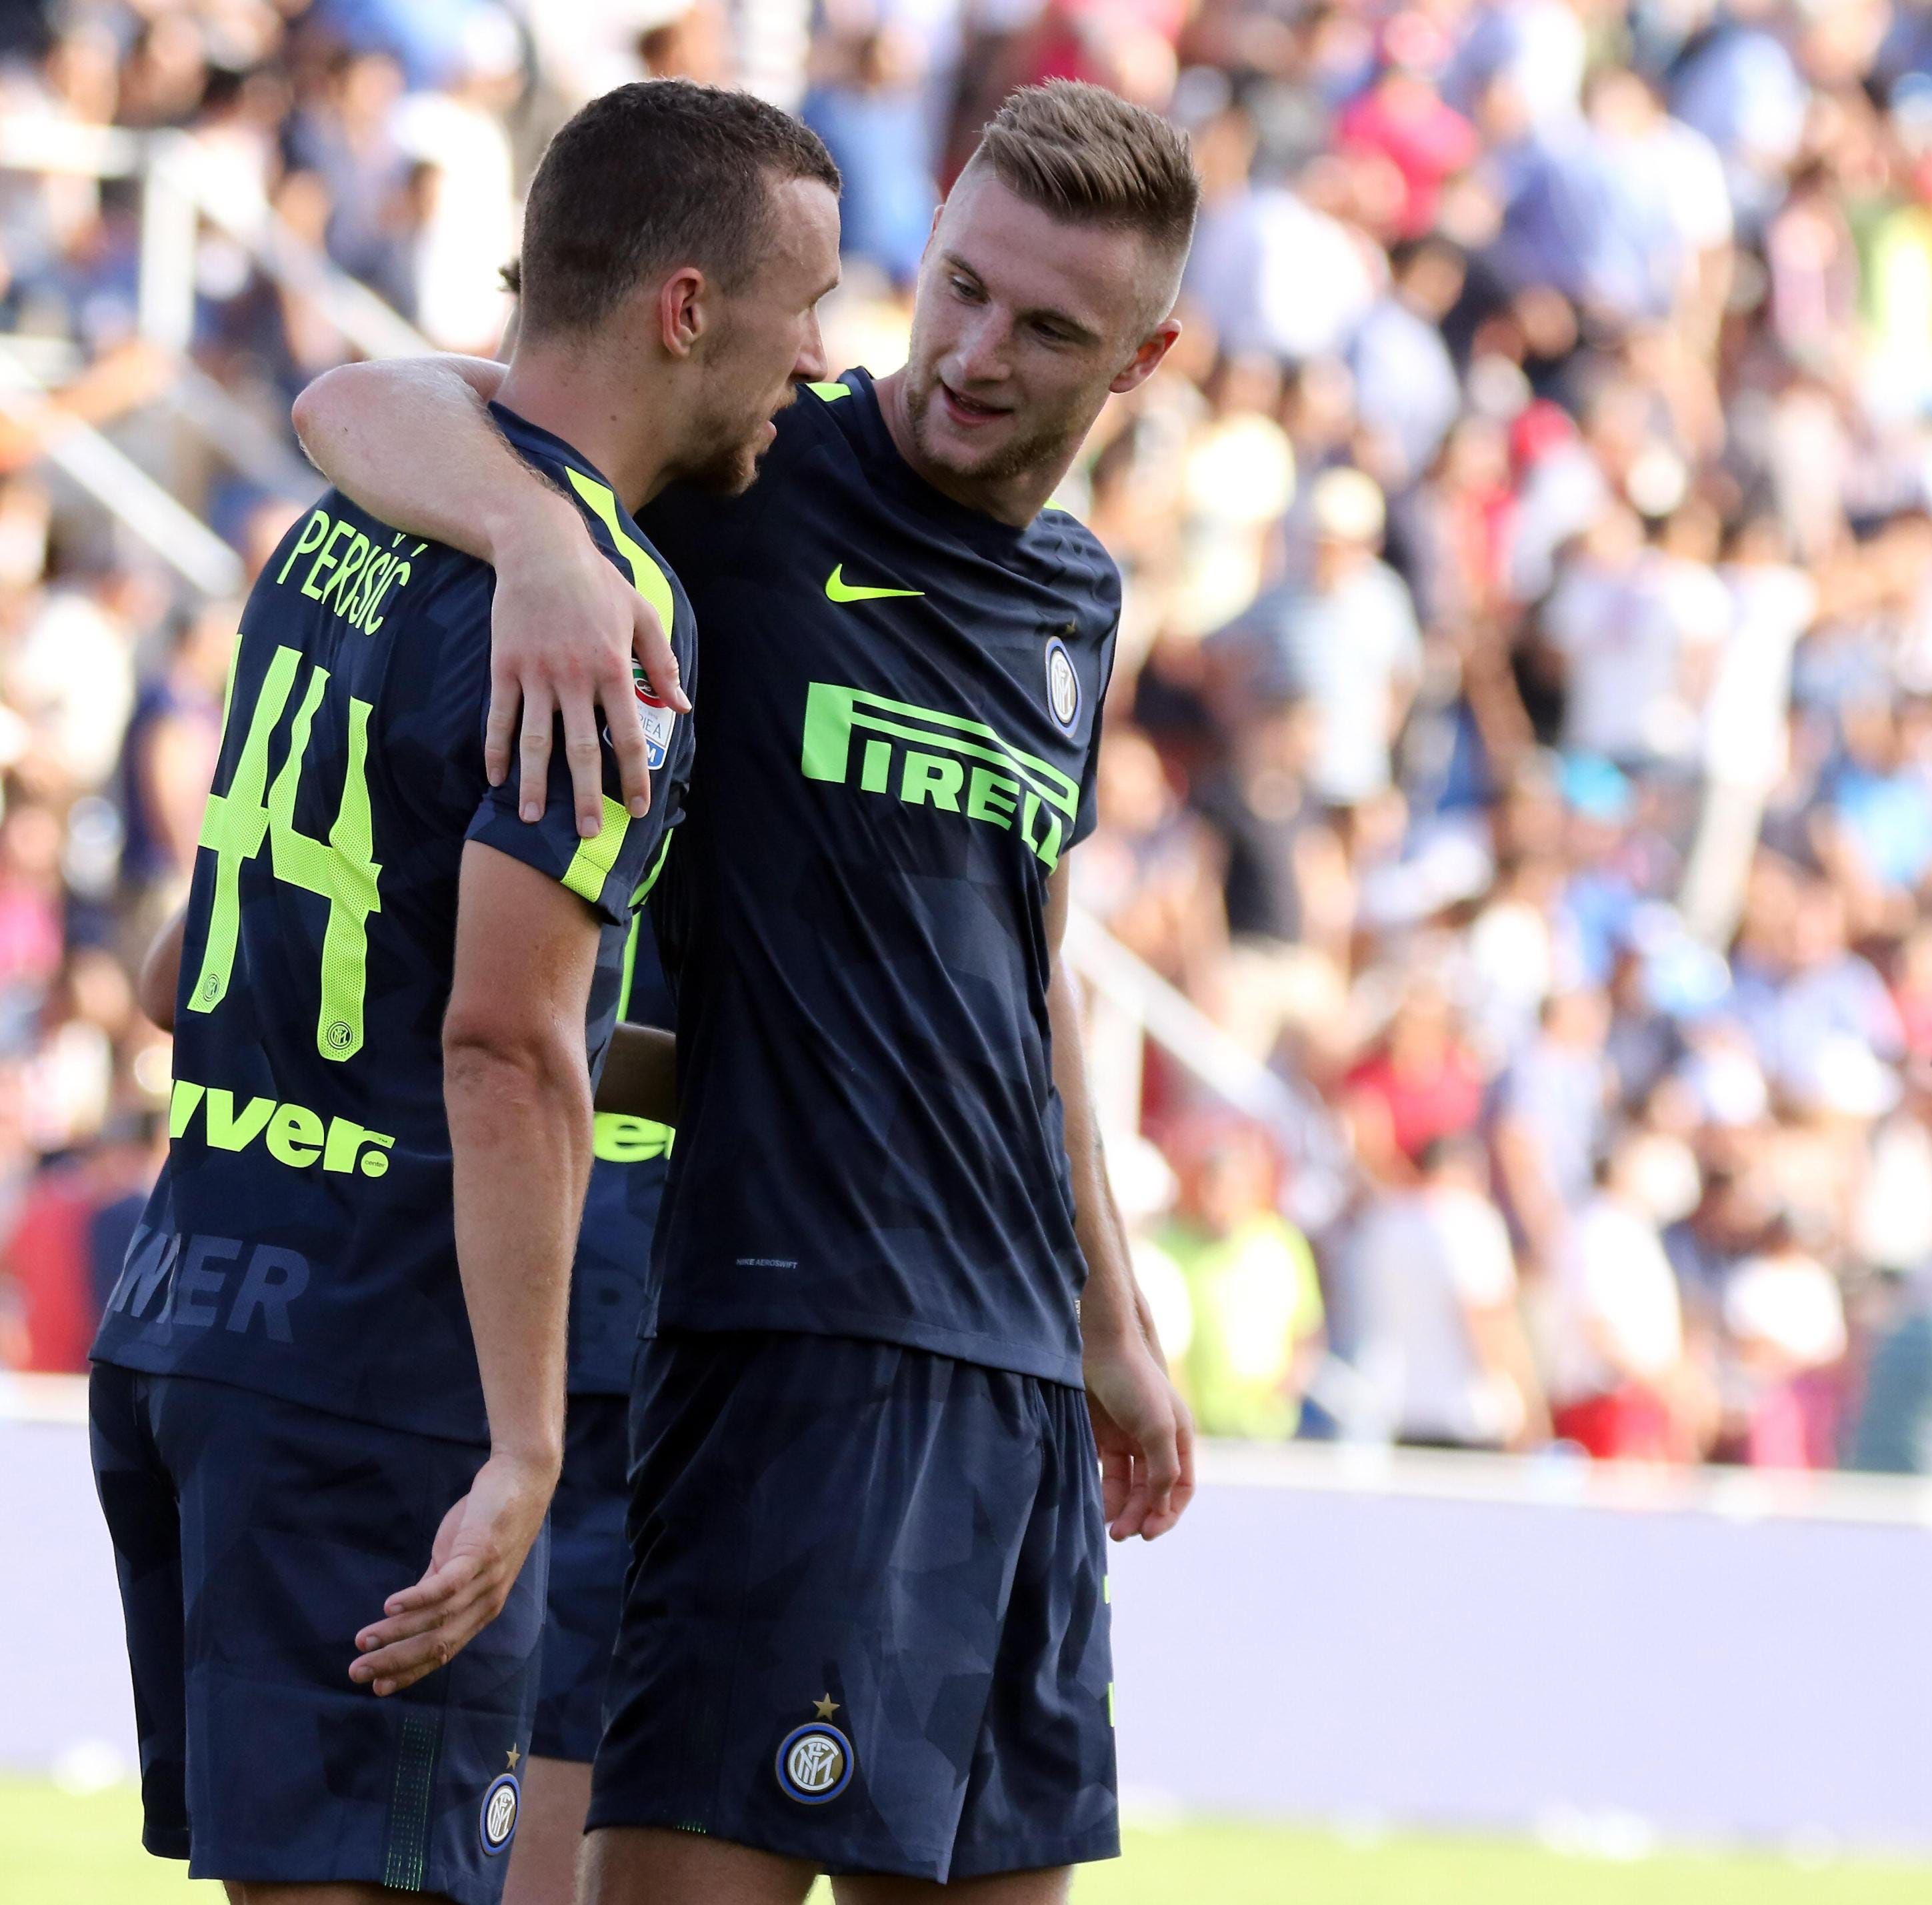 Inter leaves it late to beat Crotone 2-0 and stay perfect